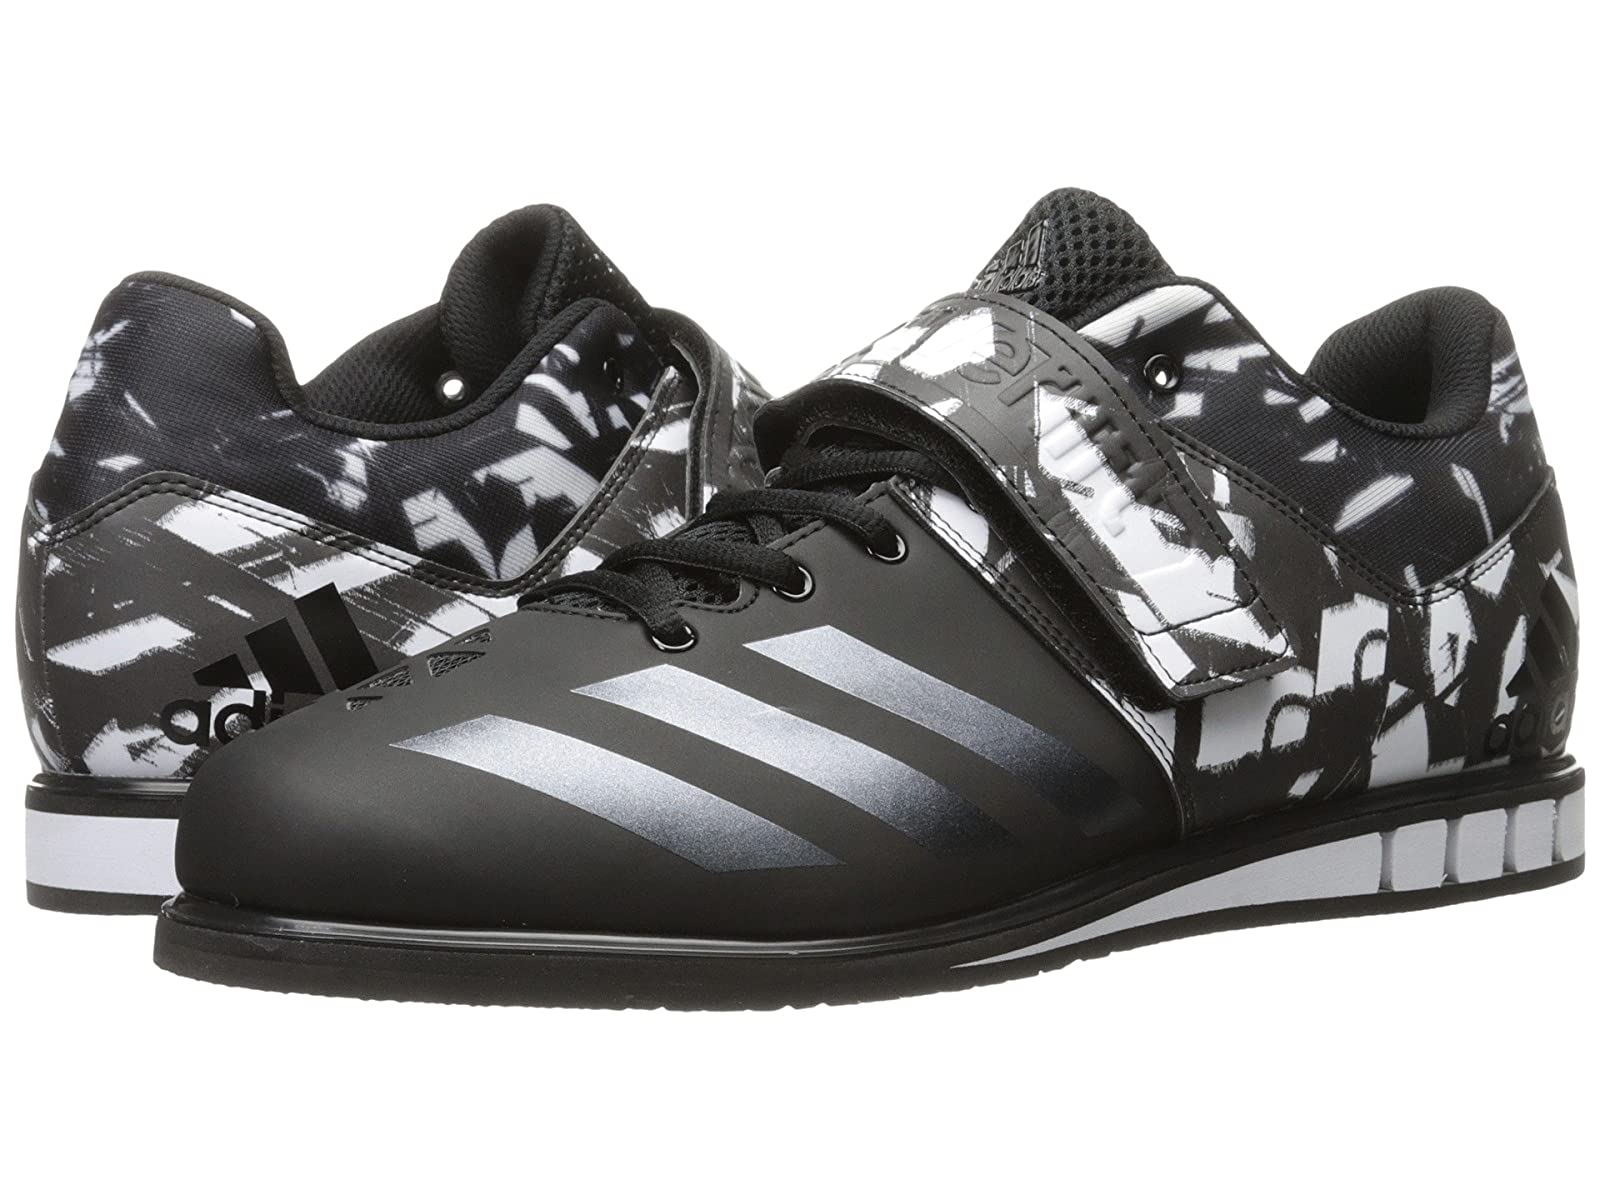 adidas Powerlift 3Stylish and characteristic shoes